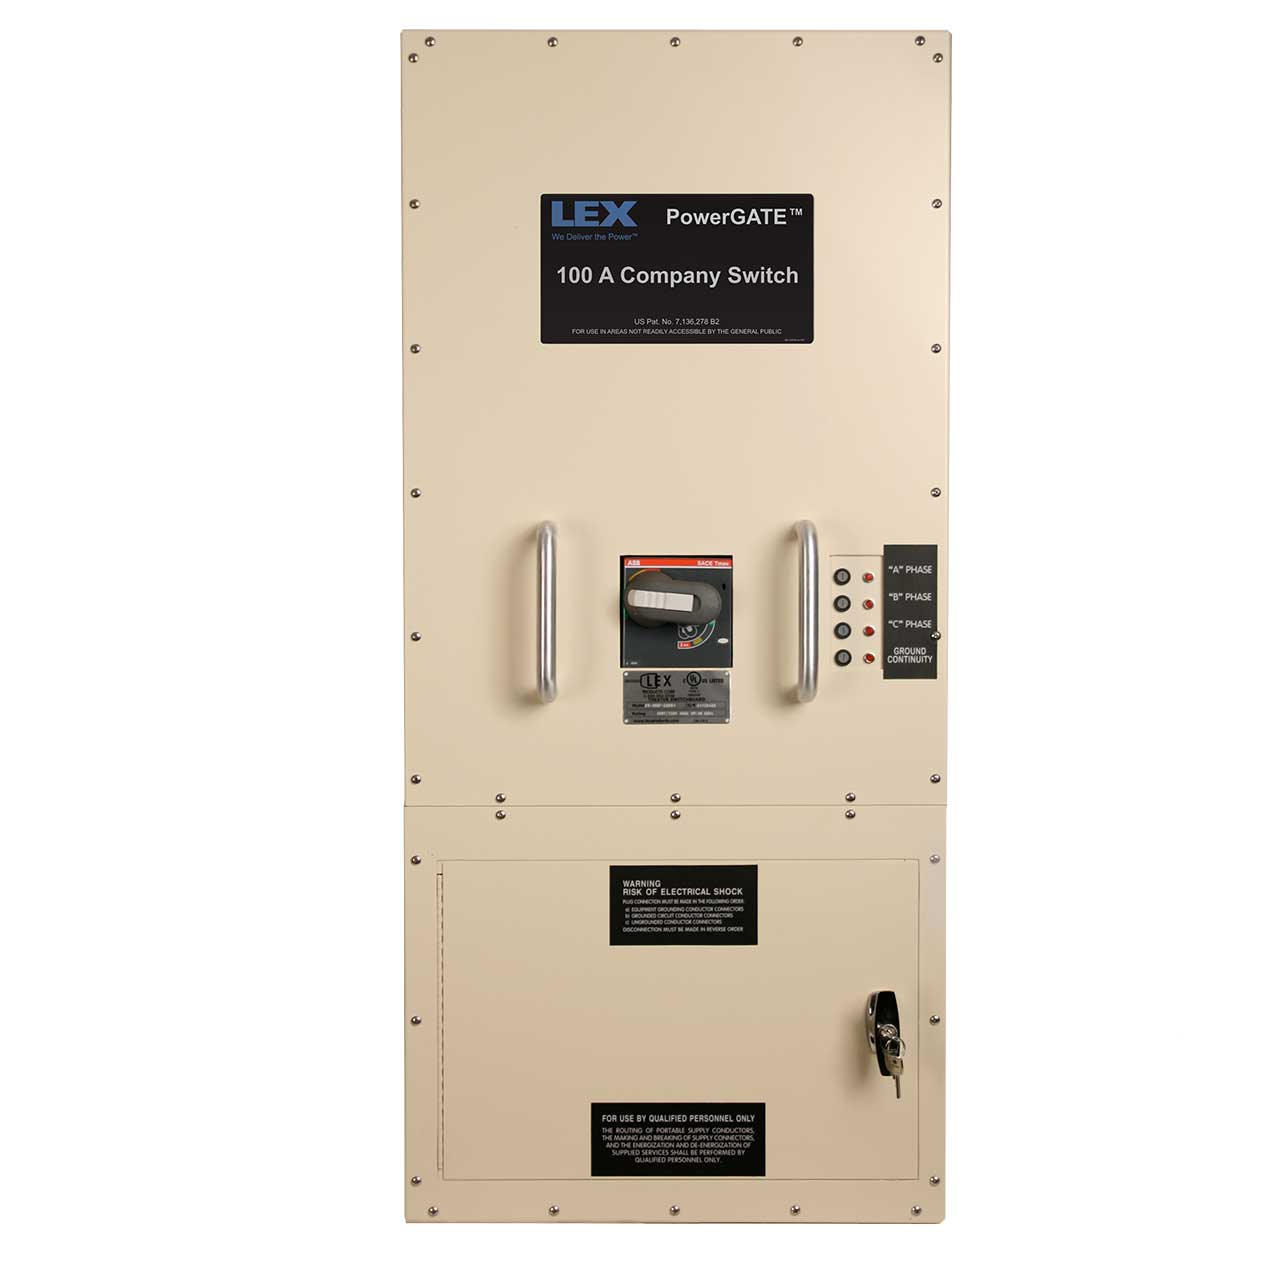 60 Amp Company Switch with IEC 60309 Pin & Sleeve Receptacle and Lugs, Indoor Use